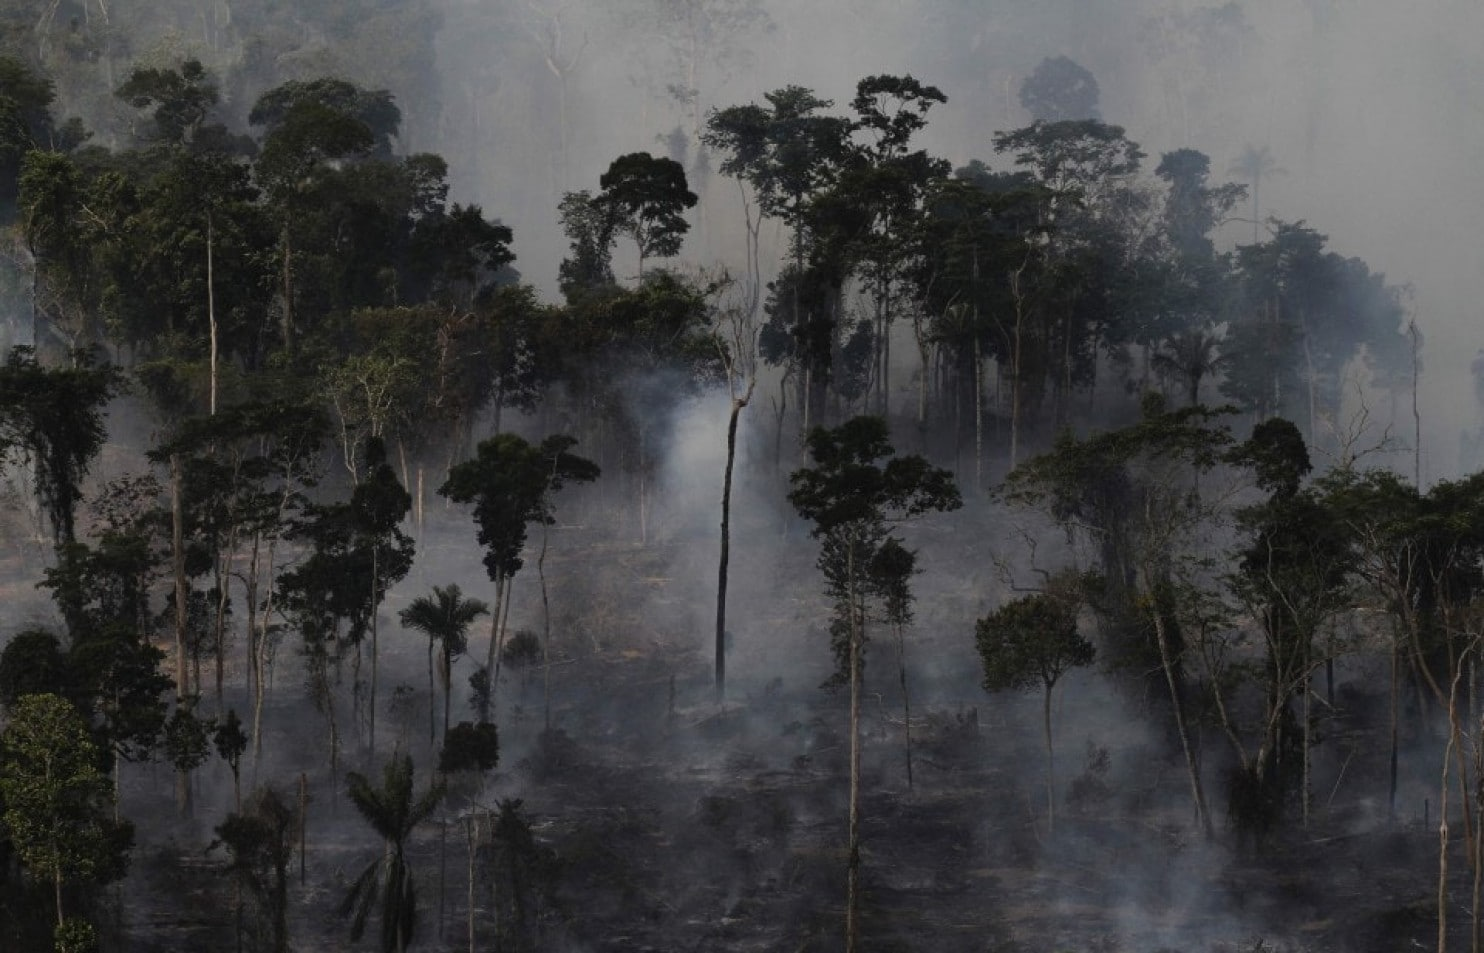 Smoke billows as an area of the Amazon rain forest is burned to clear land for agriculture on Sept. 23, 2013, near Novo Progresso, in Brazil's Para state. (Nacho Doce/Reuters)